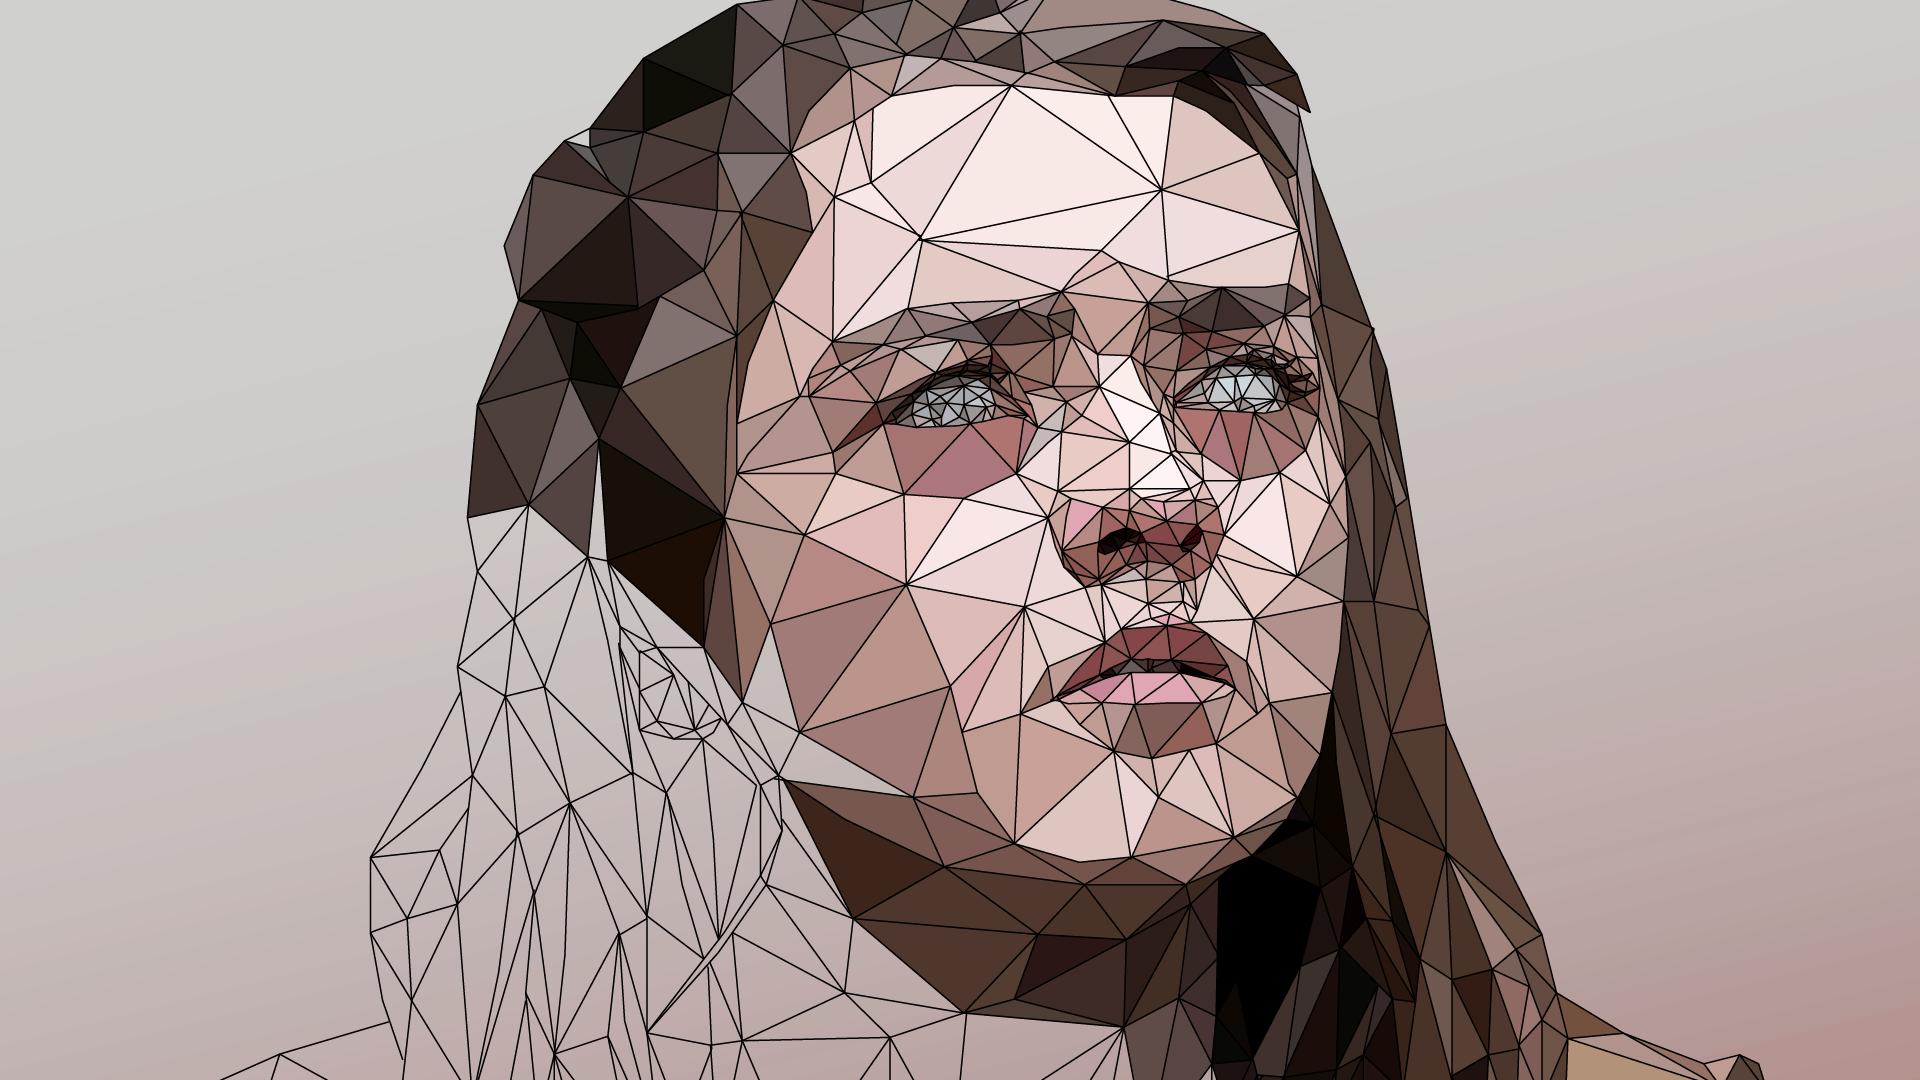 Game of thrones low poly illustration by mordi levi. digital illustration, low poly, lowpoly.